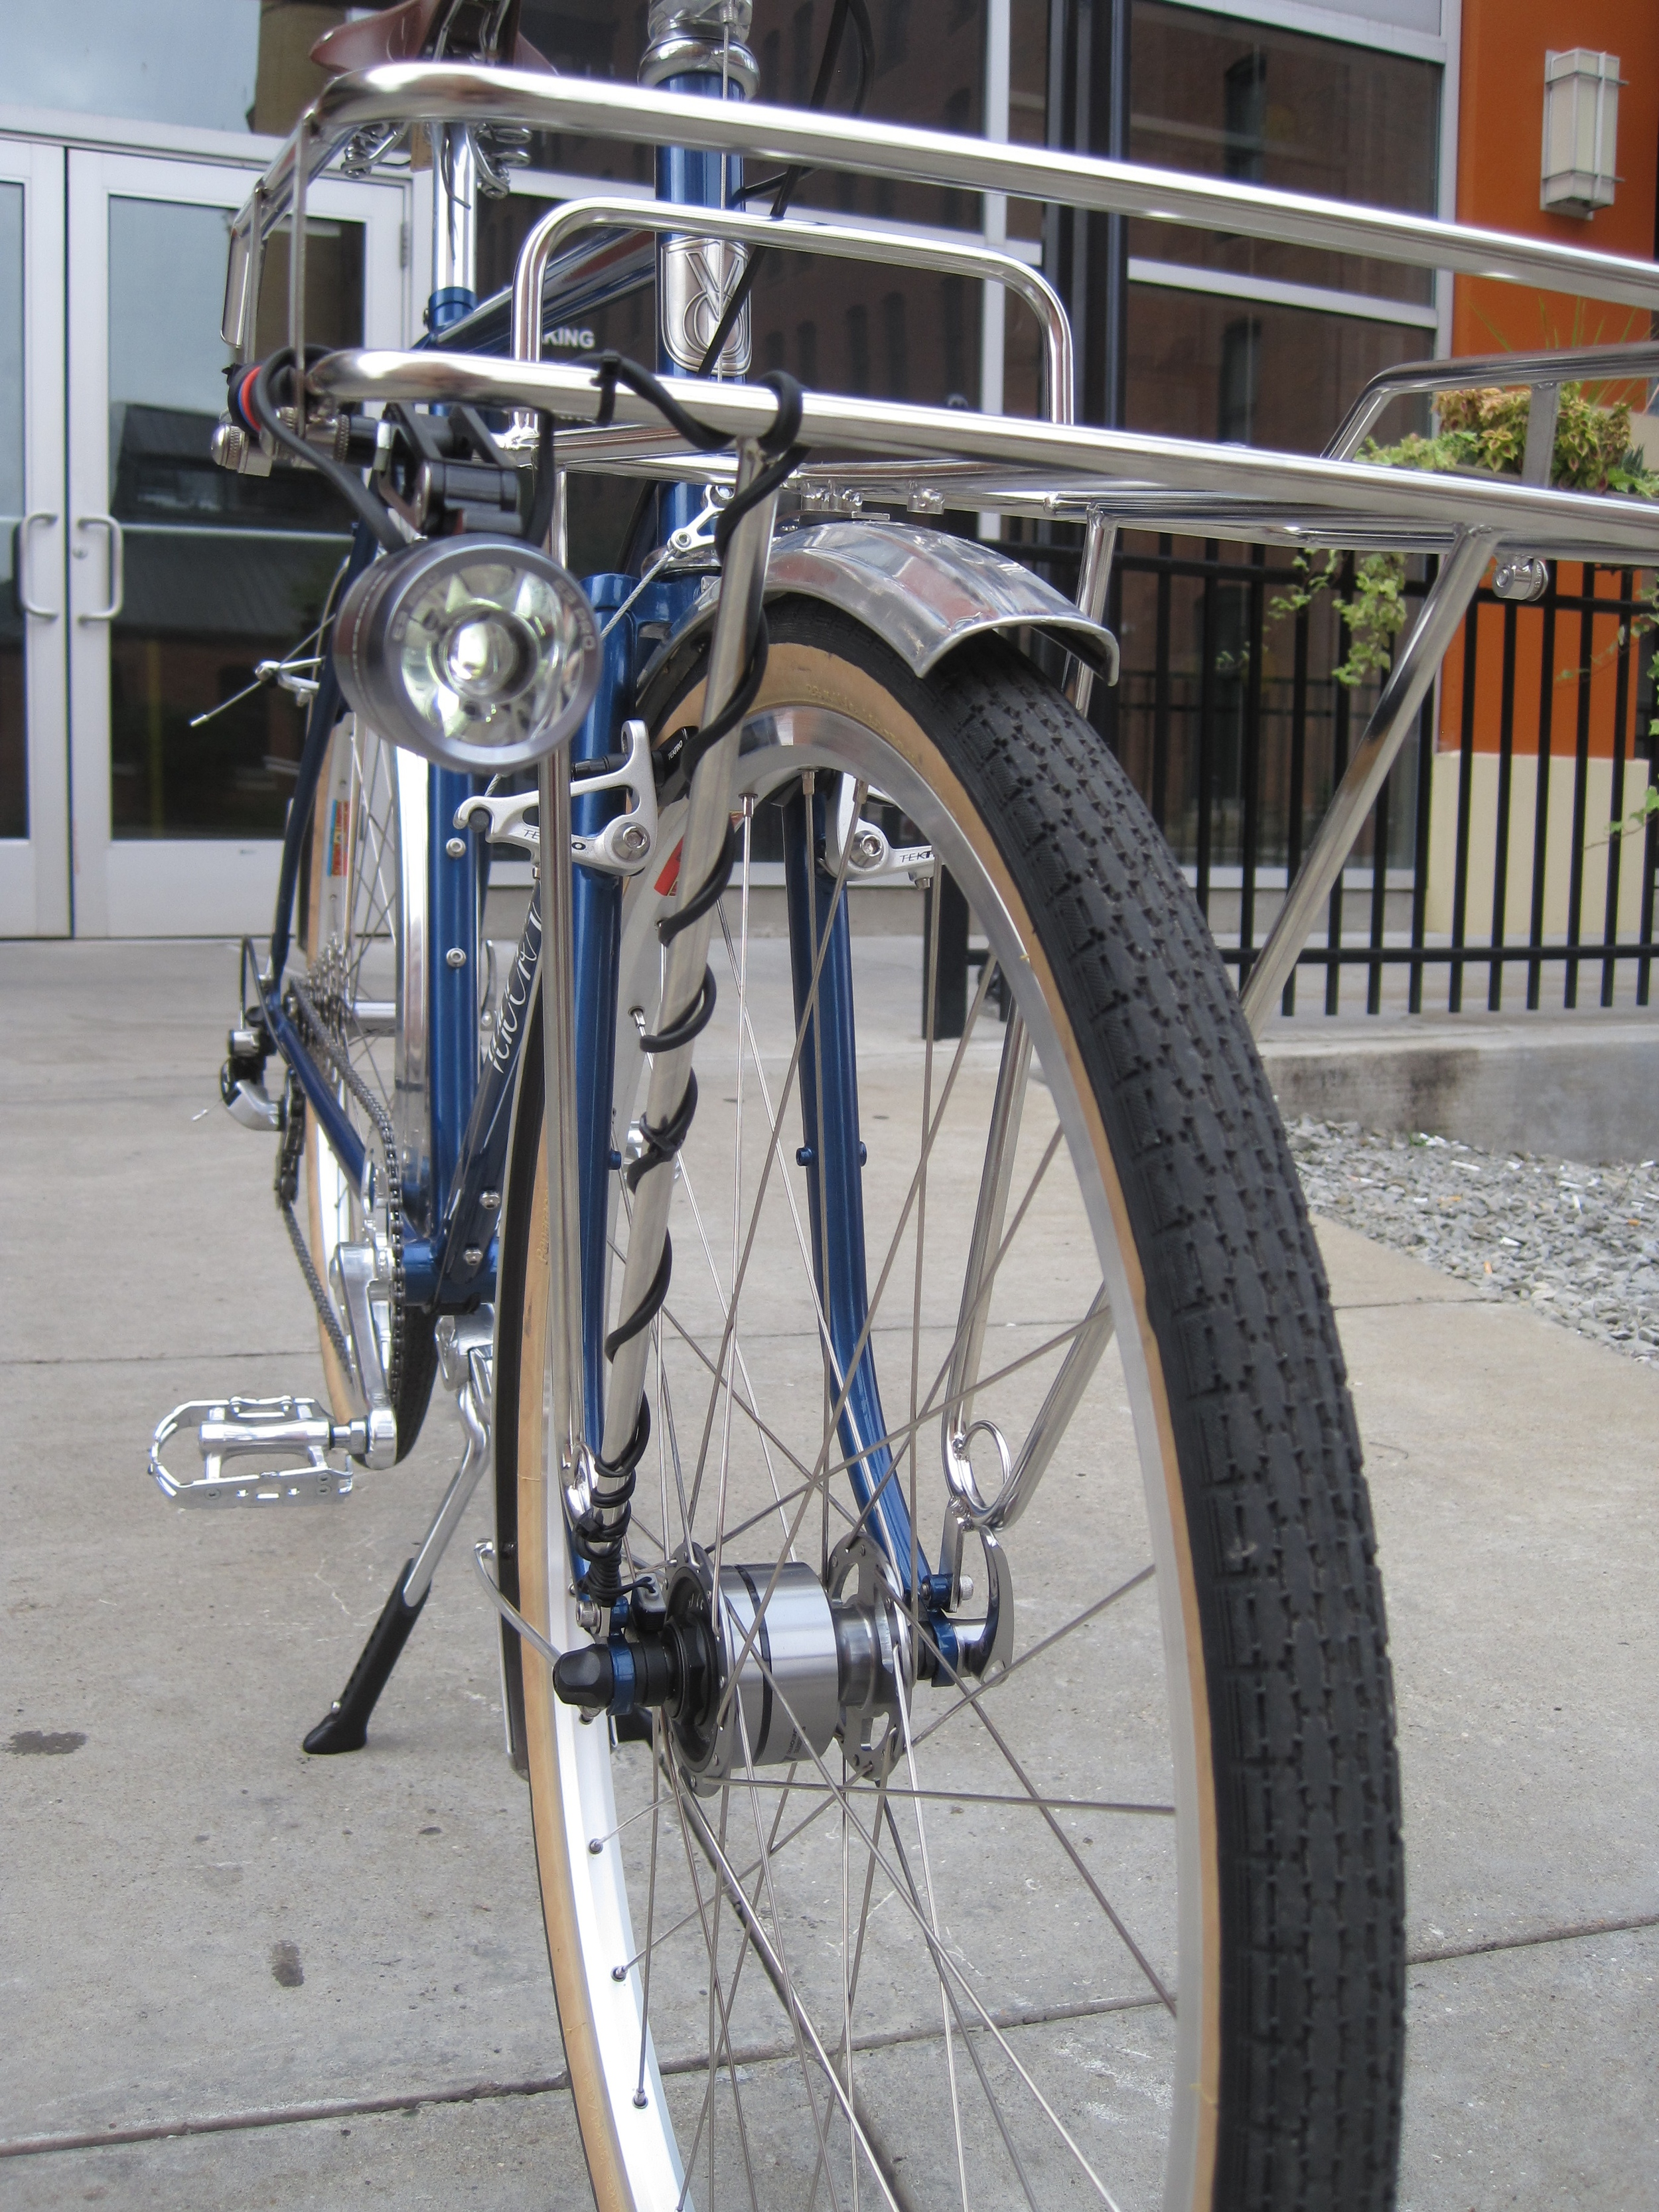 The front fender is affixed to the porteur rack for extra sturdiness.